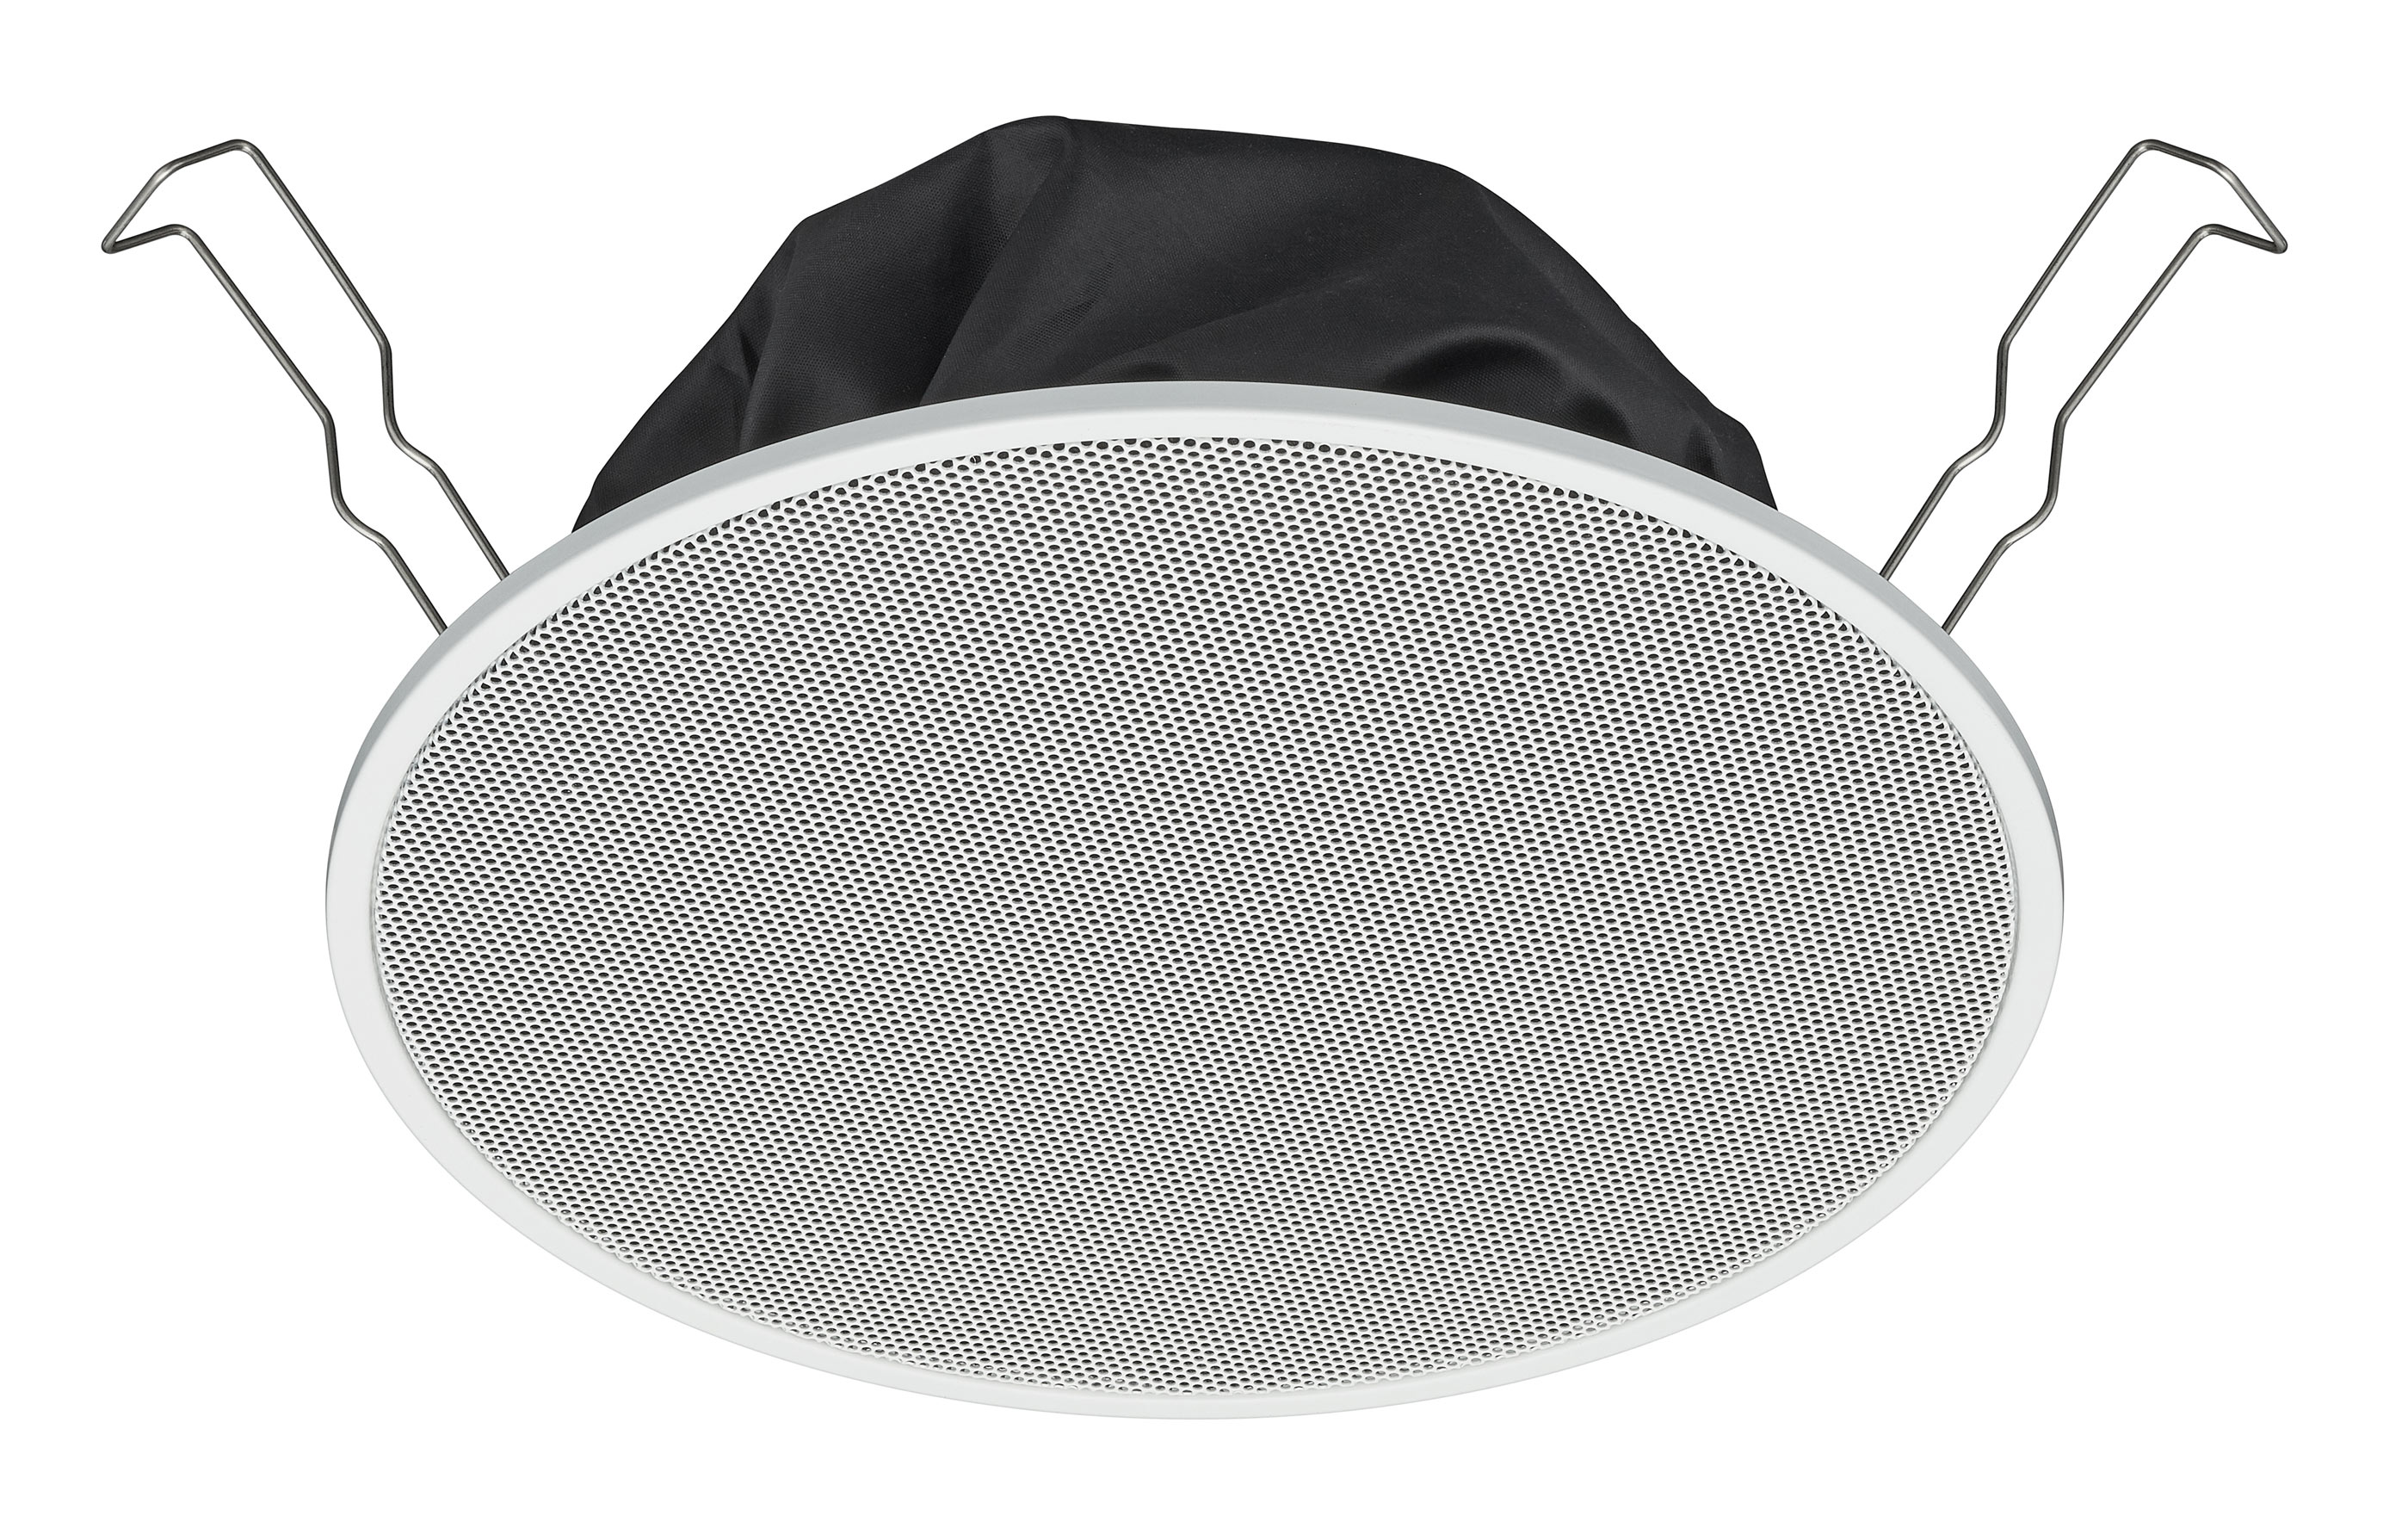 ZS-2360-AS Ceiling Mount Speaker